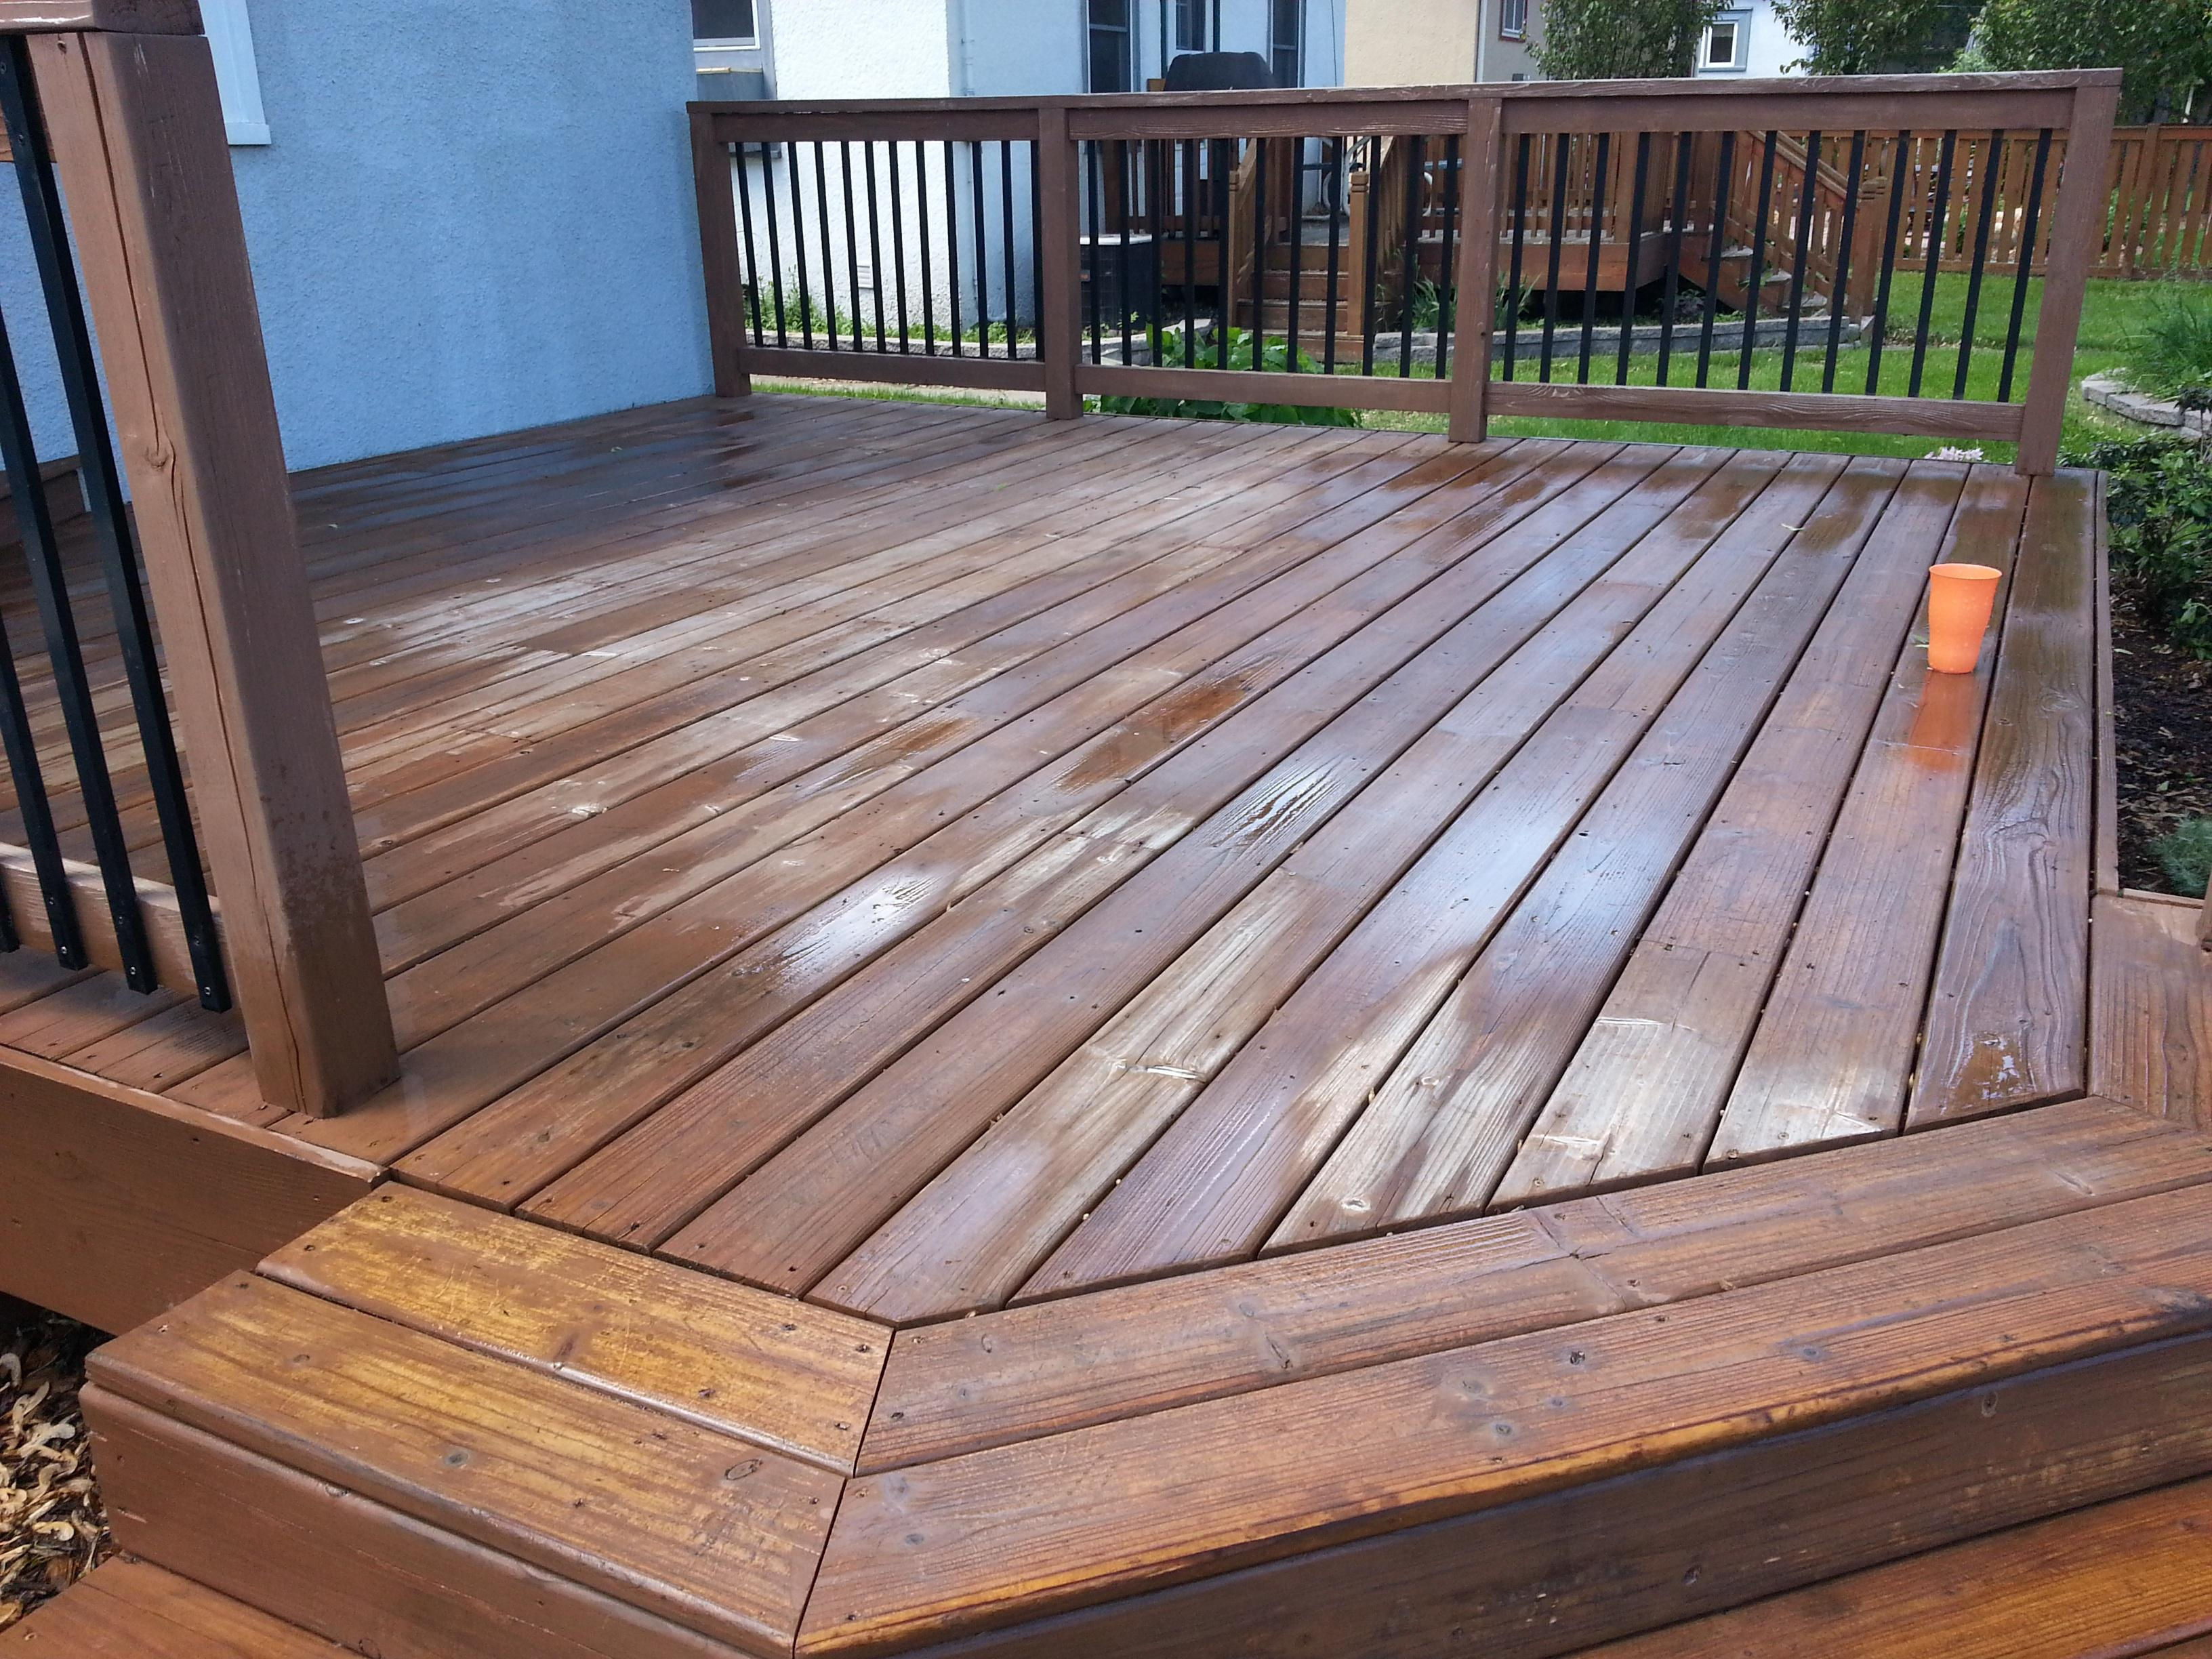 Behr Deck Over Concrete Prep Farmhouse Design And Furniture The With Measurements 3264 X 2448